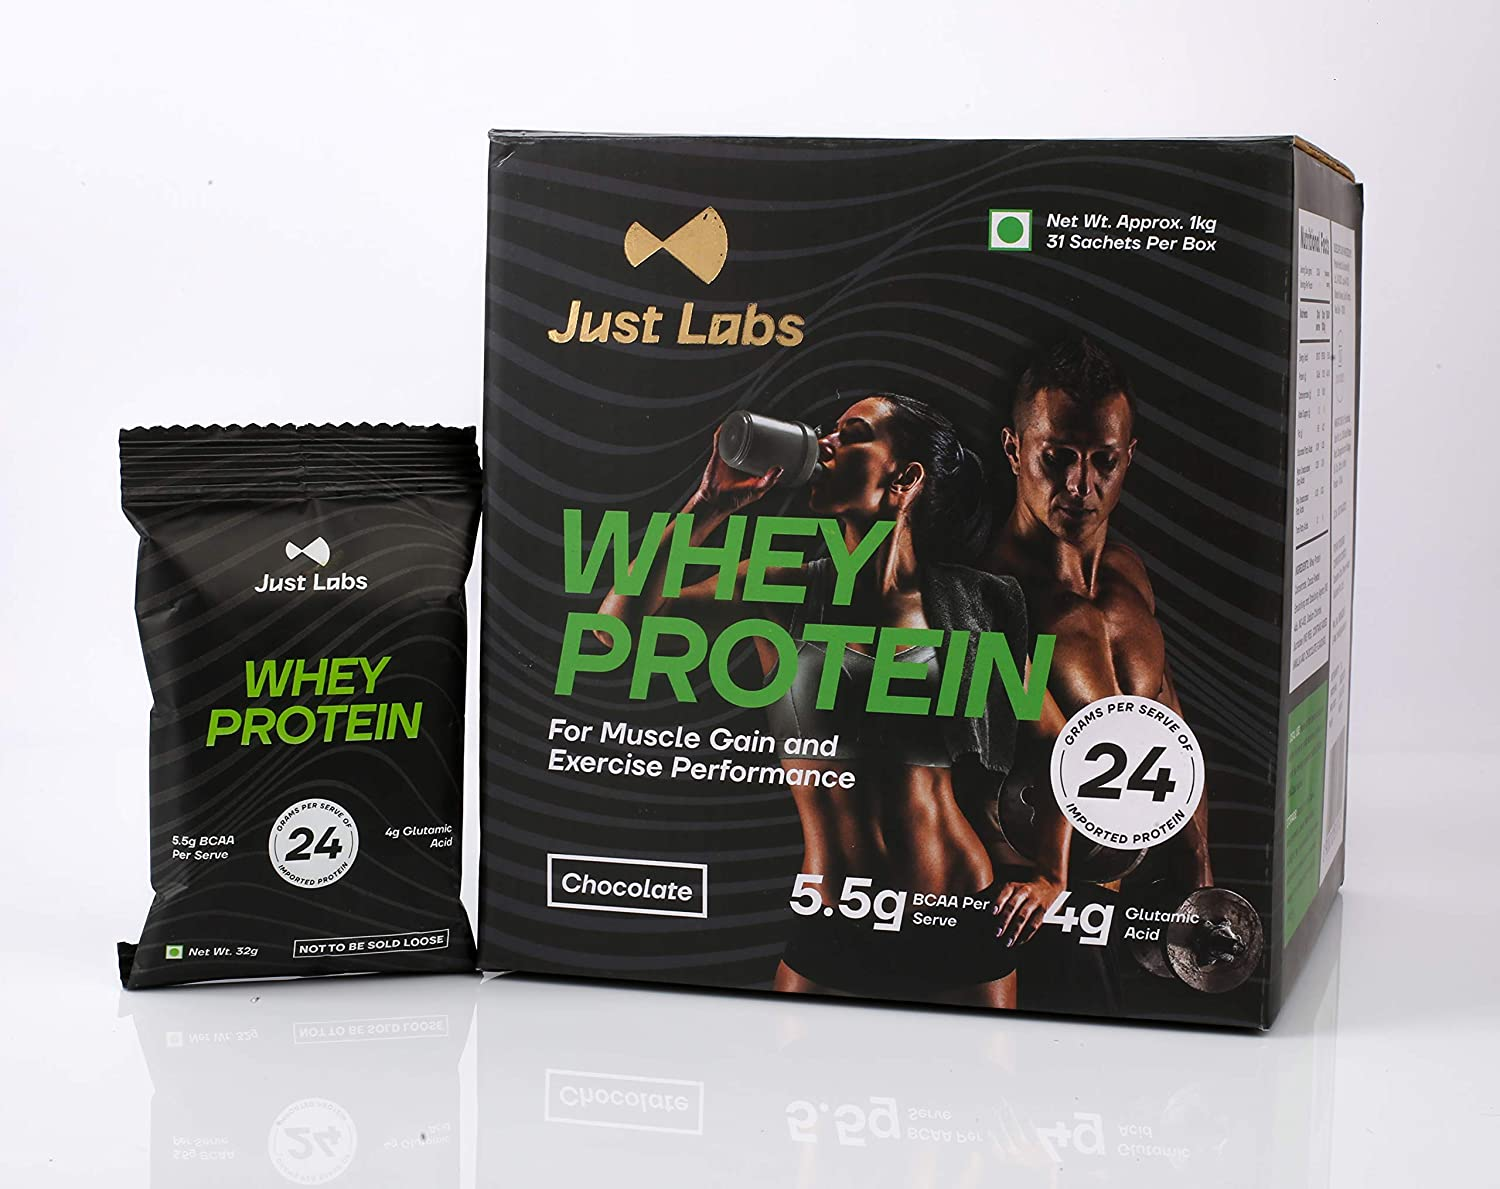 Just Labs 100% Whey Protein for Muscle Gain, Exercise Performance and Fat Loss - (1kg/2.2 lbs, 31 Single Serve No-Contact Sealed Pouches) Rich Chocolate (24g Protein per Serve)